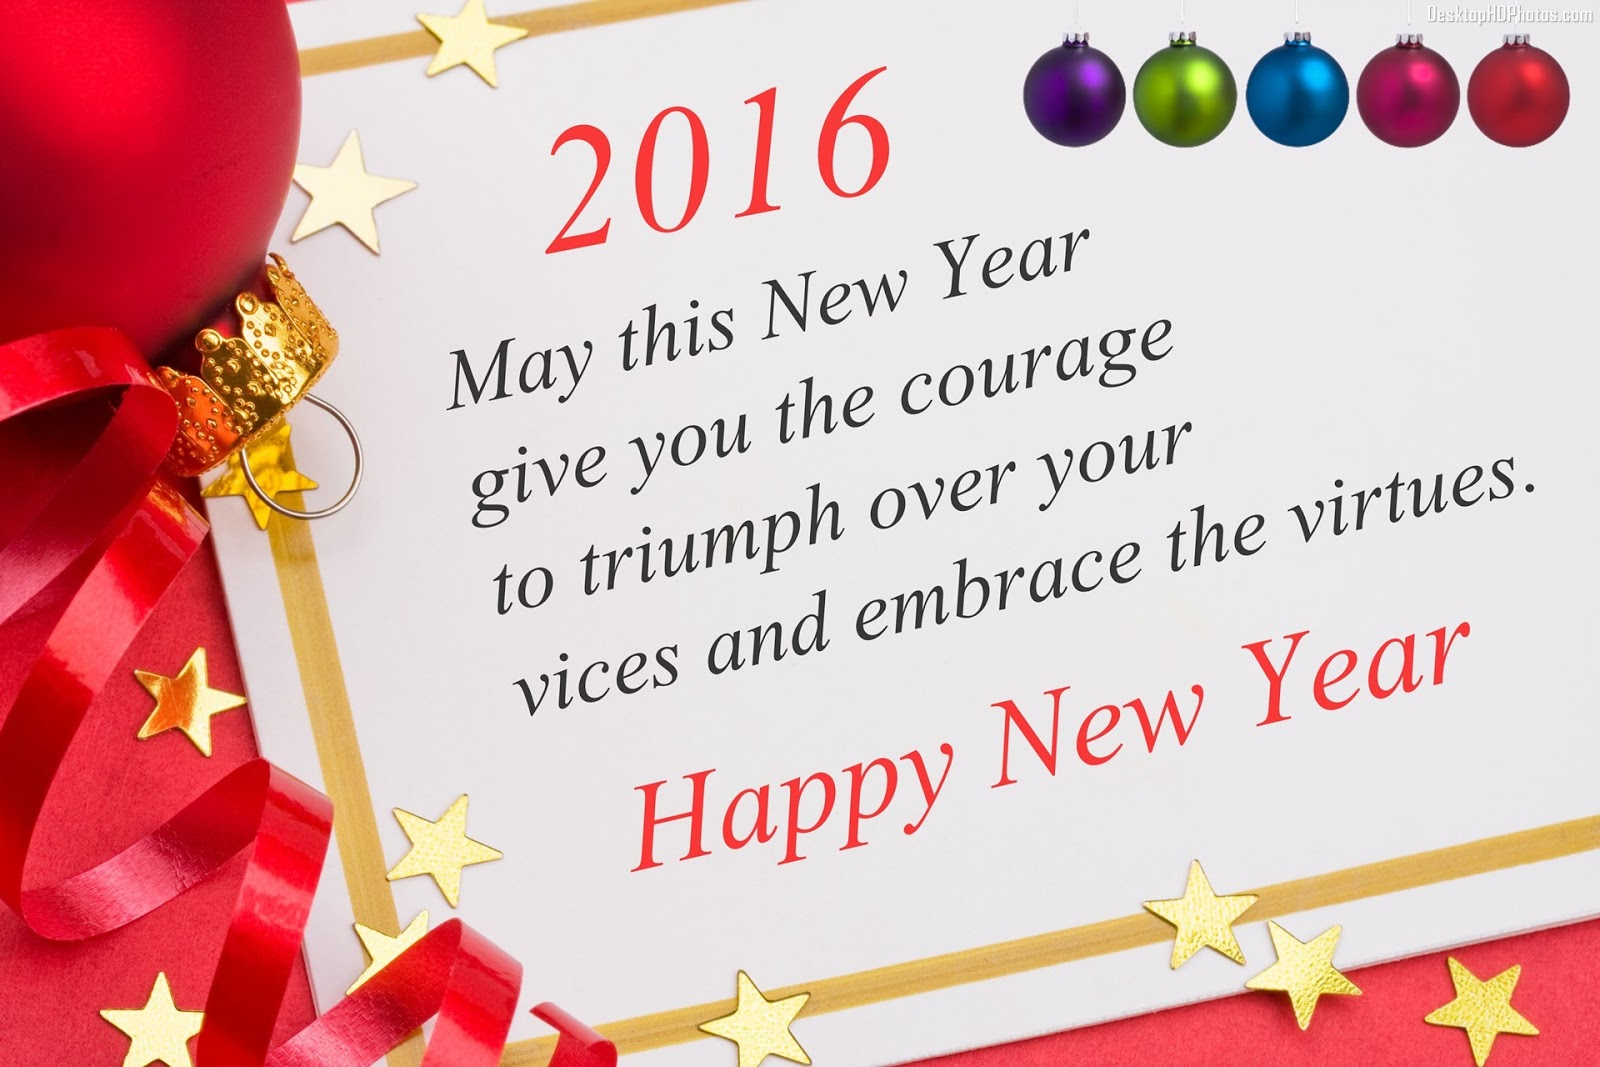 Bhupendra Chahar Happy New Year 2016 Greetings Wishes Quotes